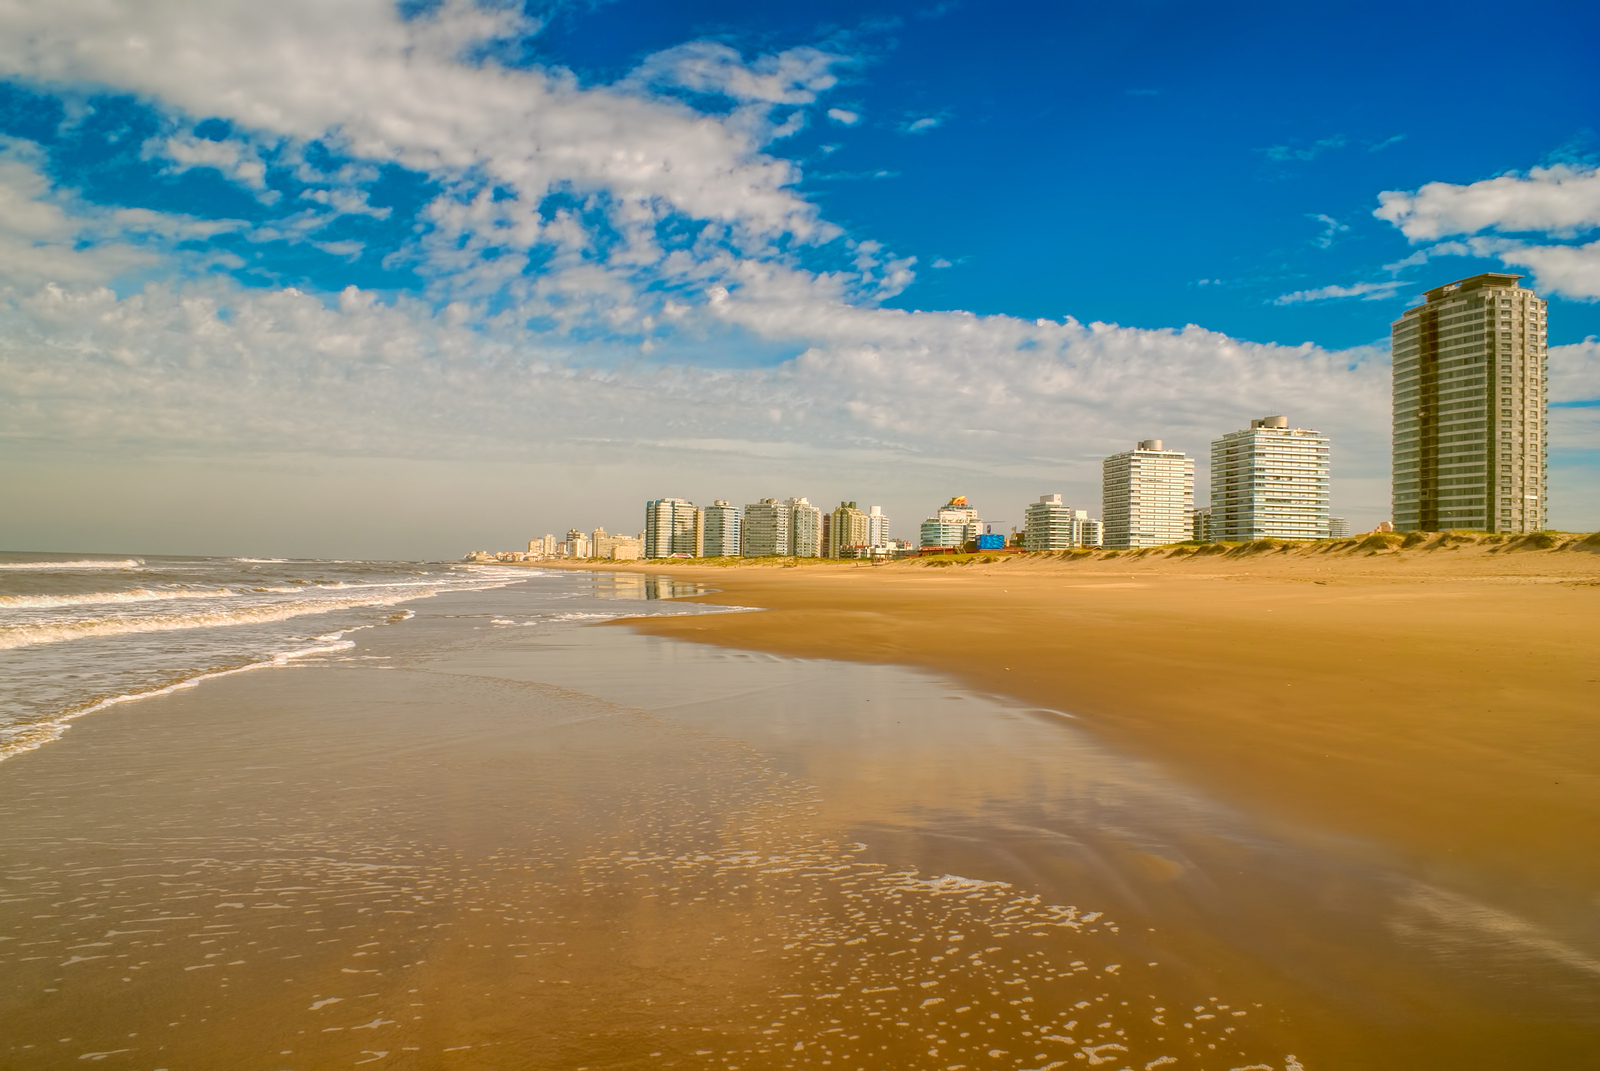 Outlying Beaches Punta del Este, Off-the-Beaten-Path 2015 Travel Destinations - Presidential Aviation